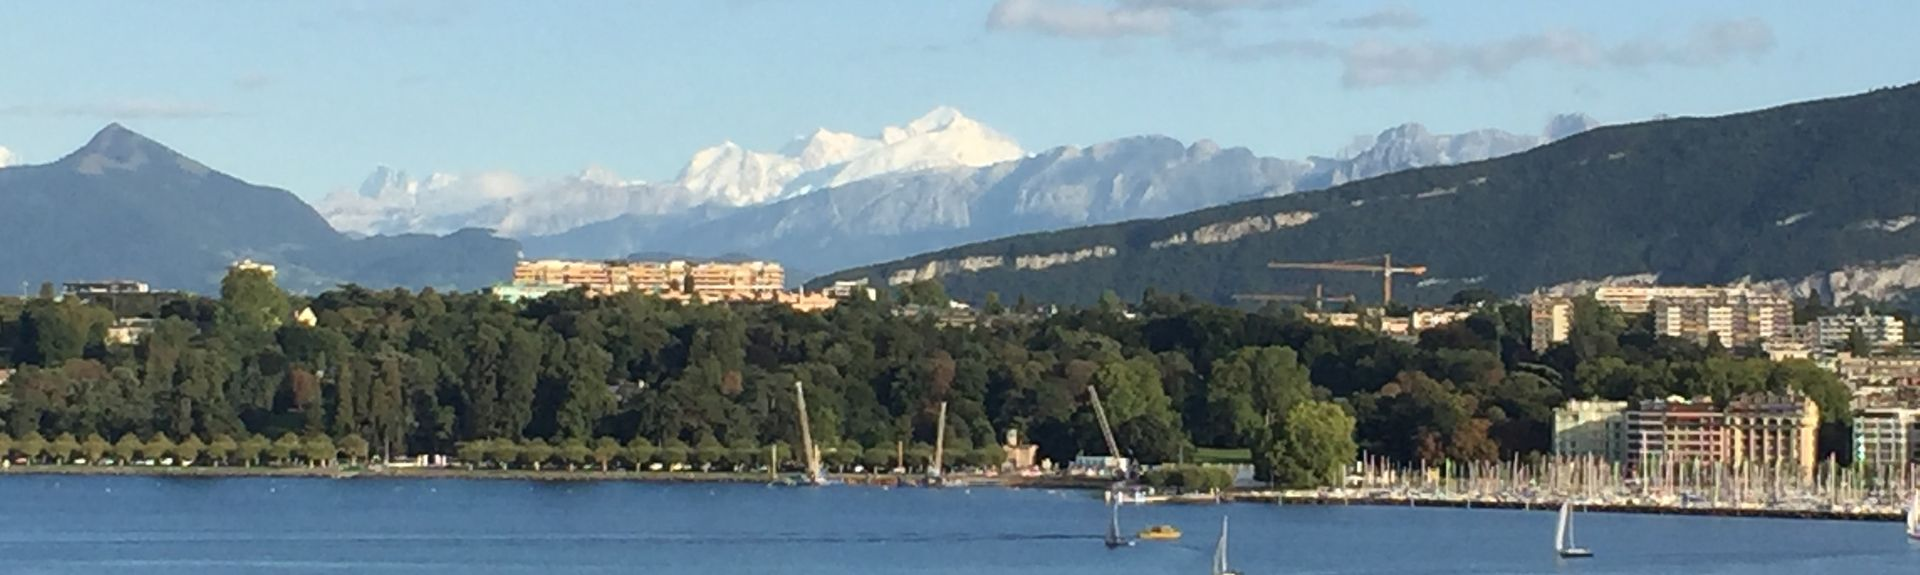 Meyrin, Geneva, Switzerland